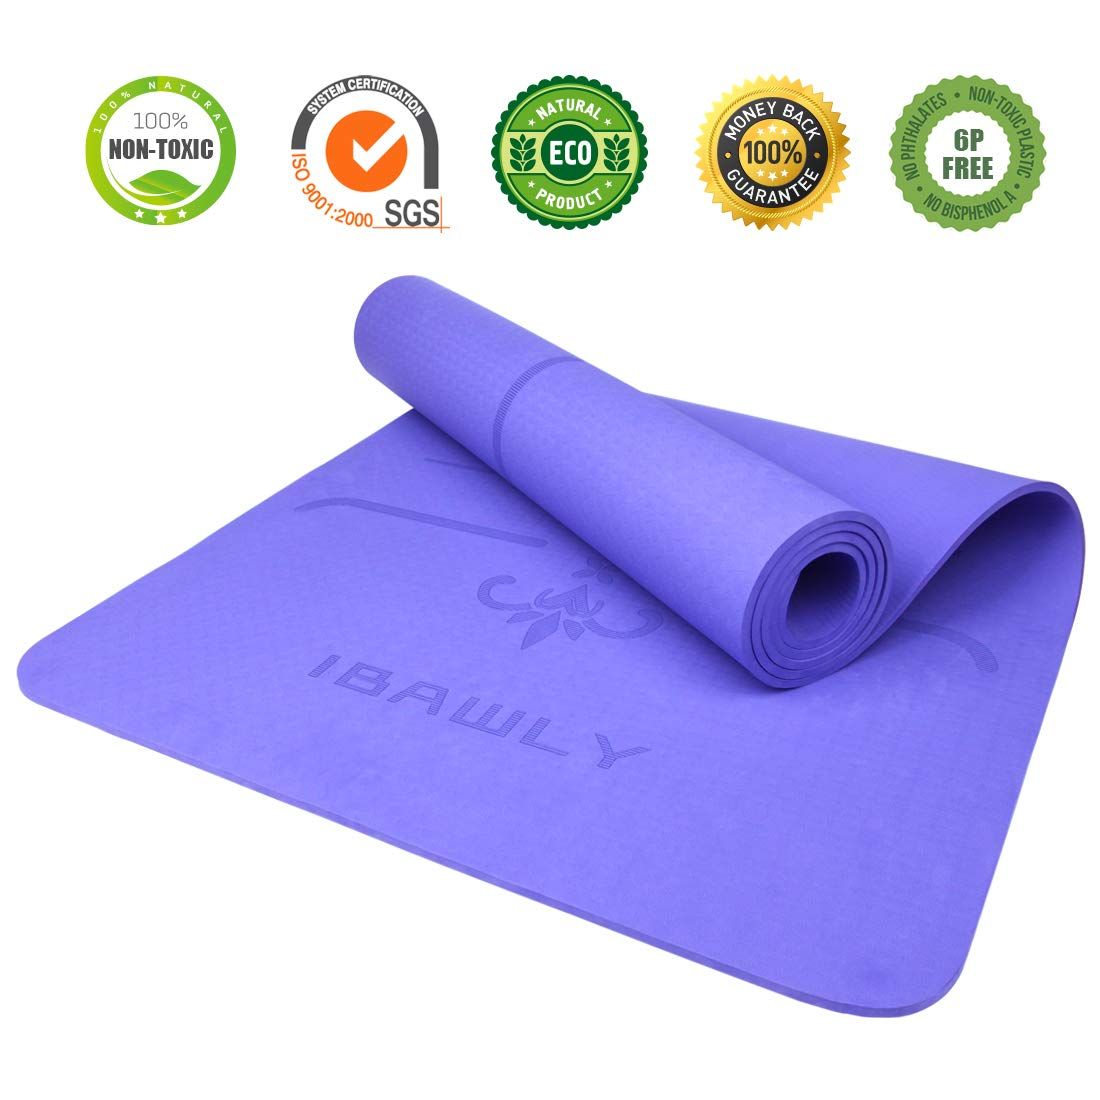 IBAWLY Eco Friendly Non Slip Hot Yoga Mat 1 4 Extra Thick High Density Anti-Tear Exercise Mat for Yoga Fitness Workout 72 x 24 with Carrying Strap 6mm